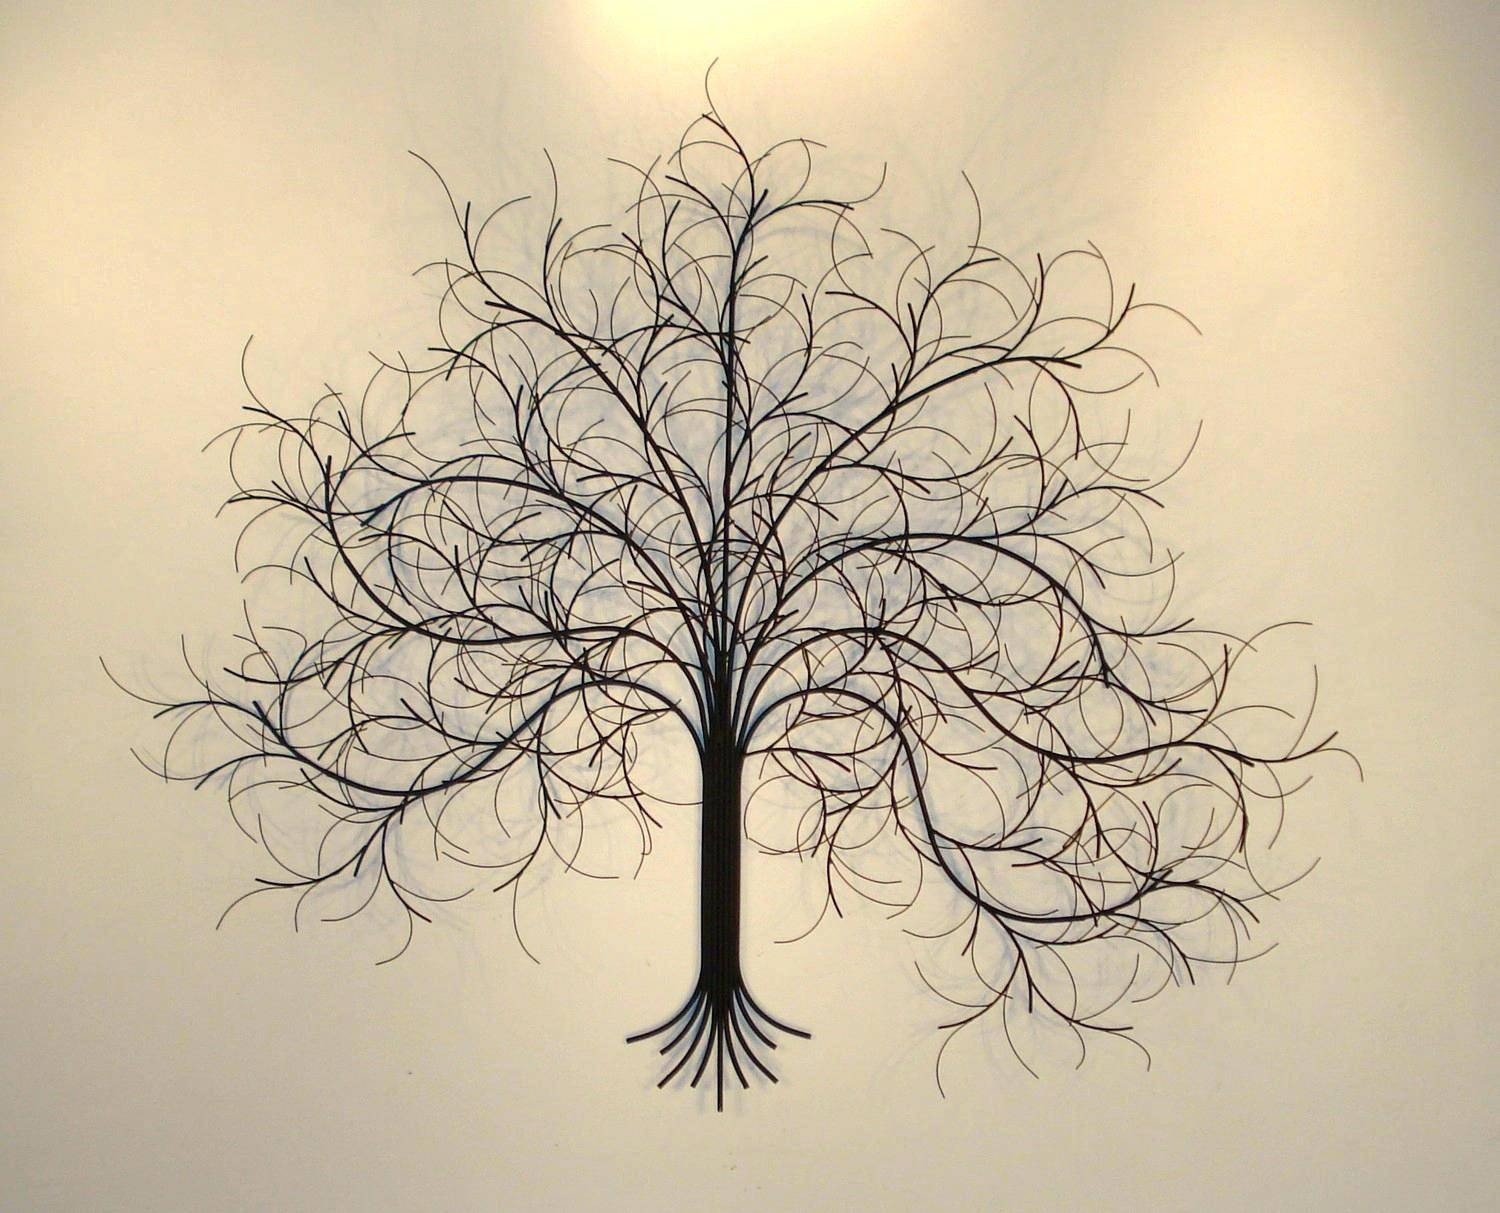 Wall Decor: Impressive Kohl's Metal Wall Decor For Your House With Regard To Most Popular Kohls Metal Tree Wall Art (View 6 of 30)